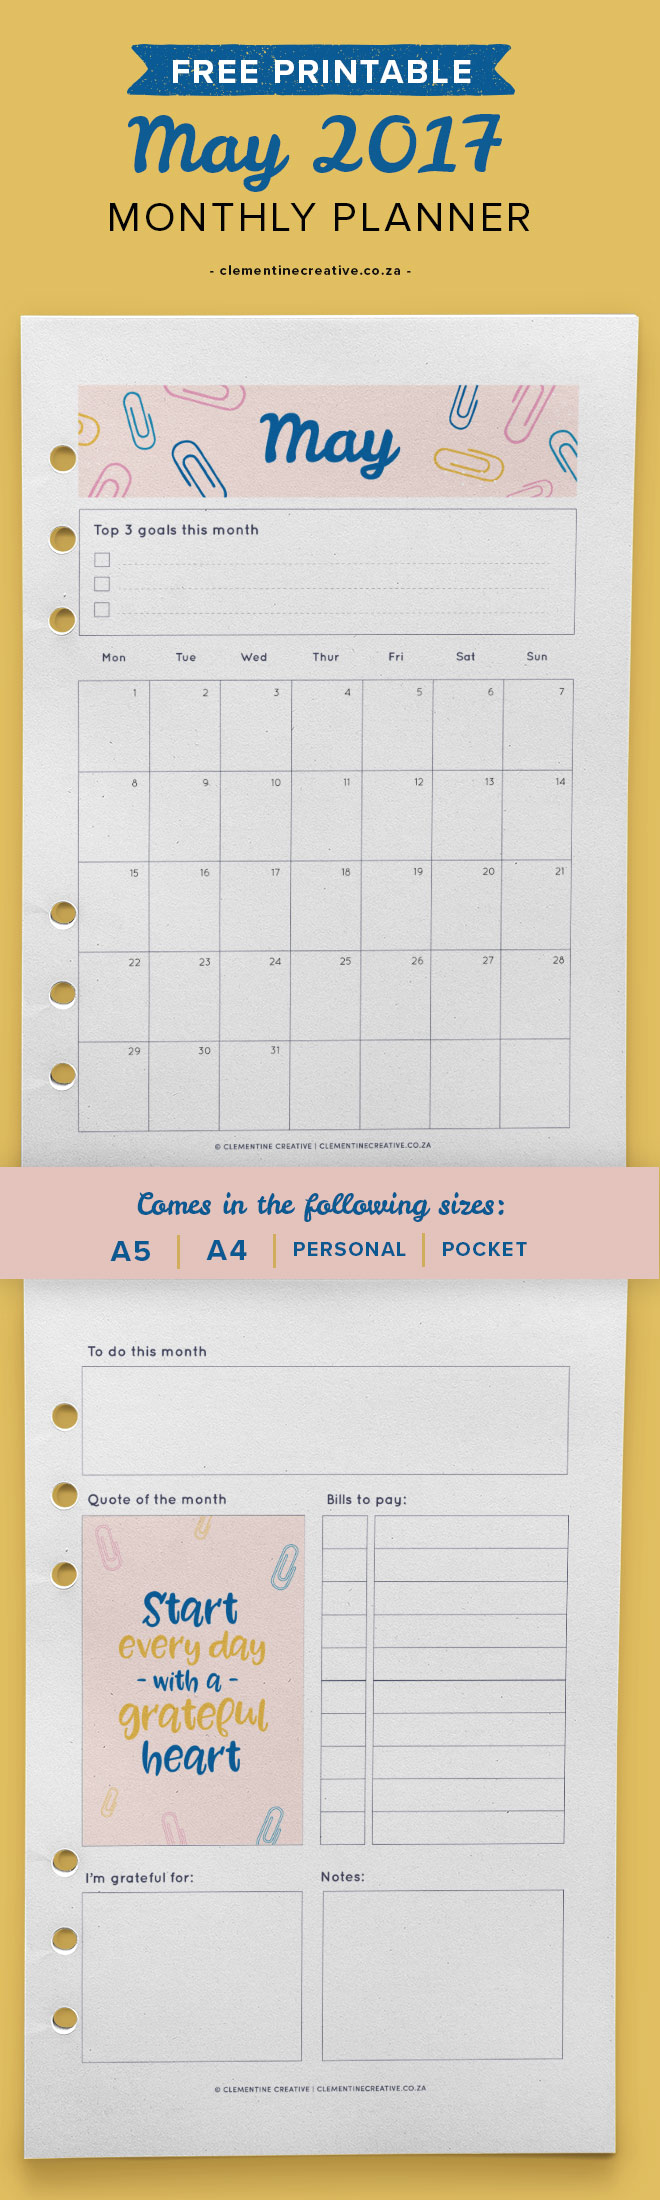 May 2017 Free Printable Monthly Planner - Clementine ...